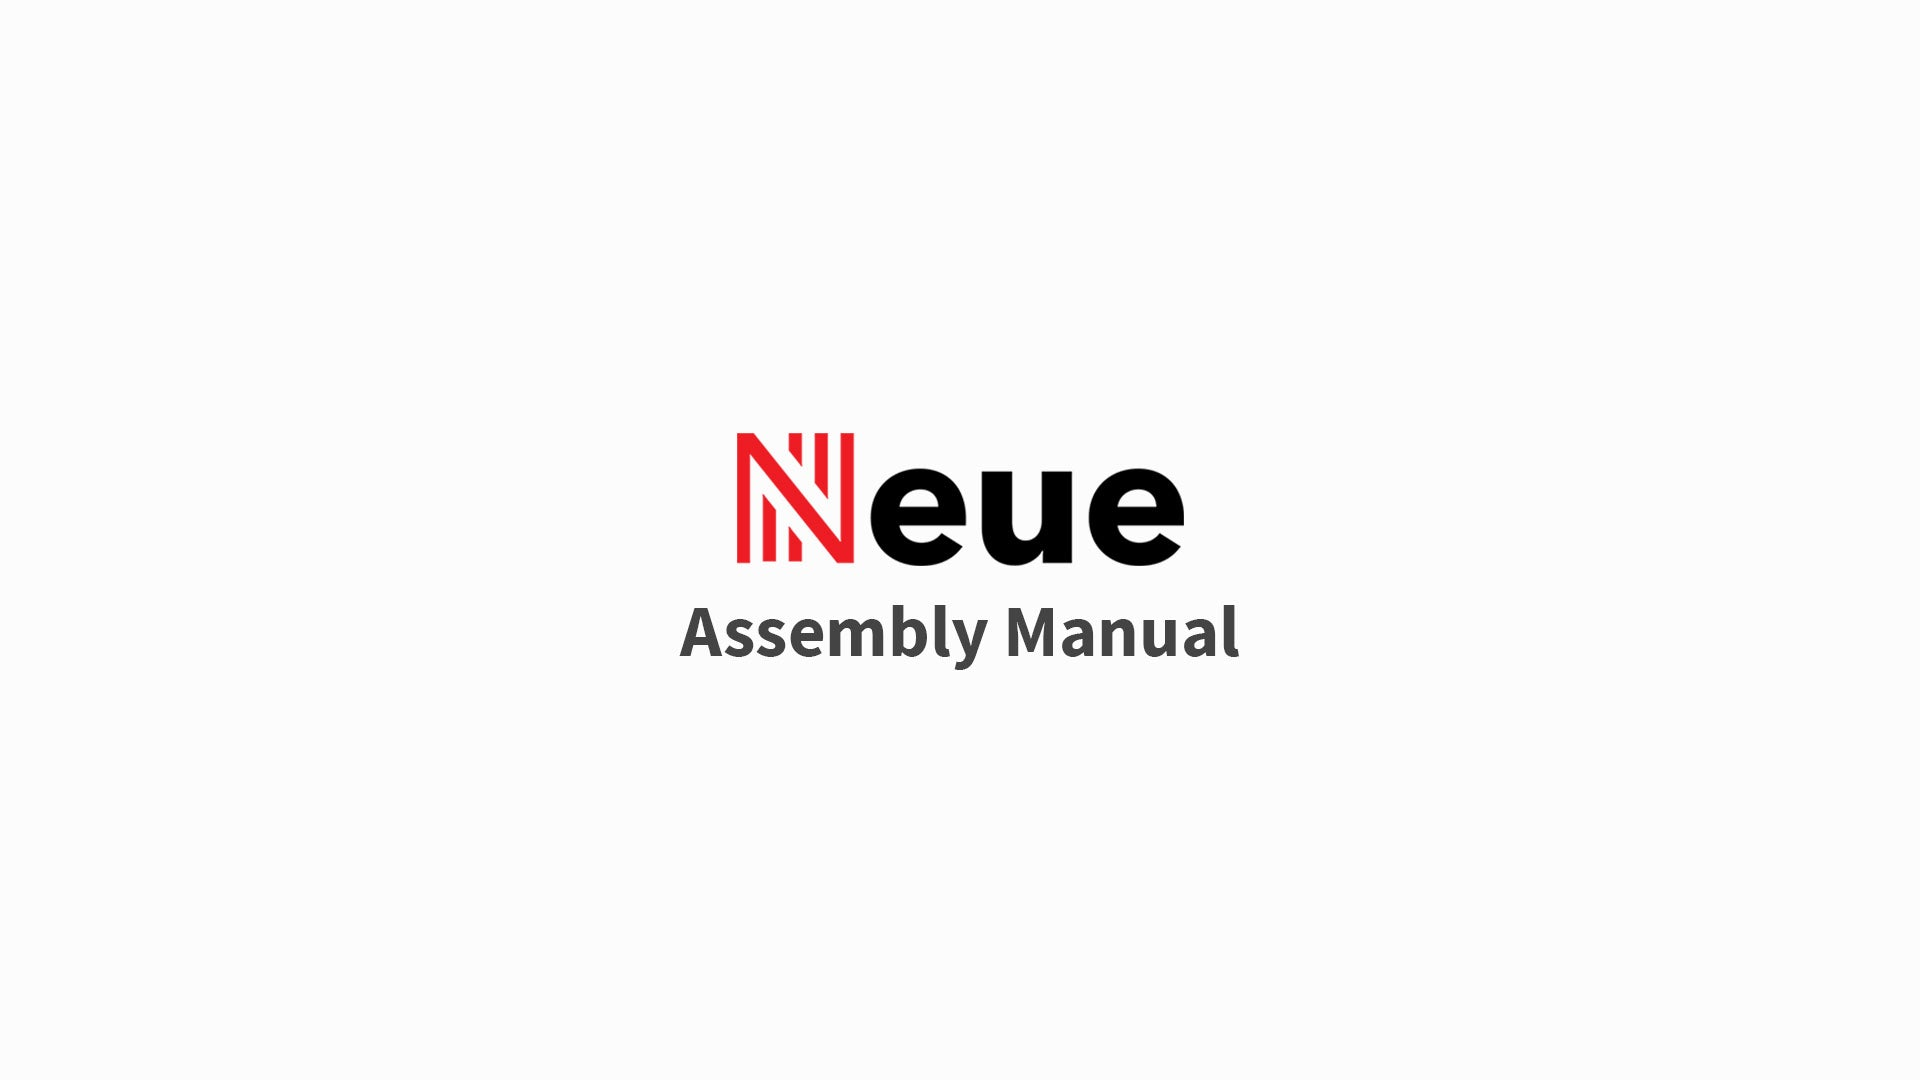 NeueChair Assembly Guide